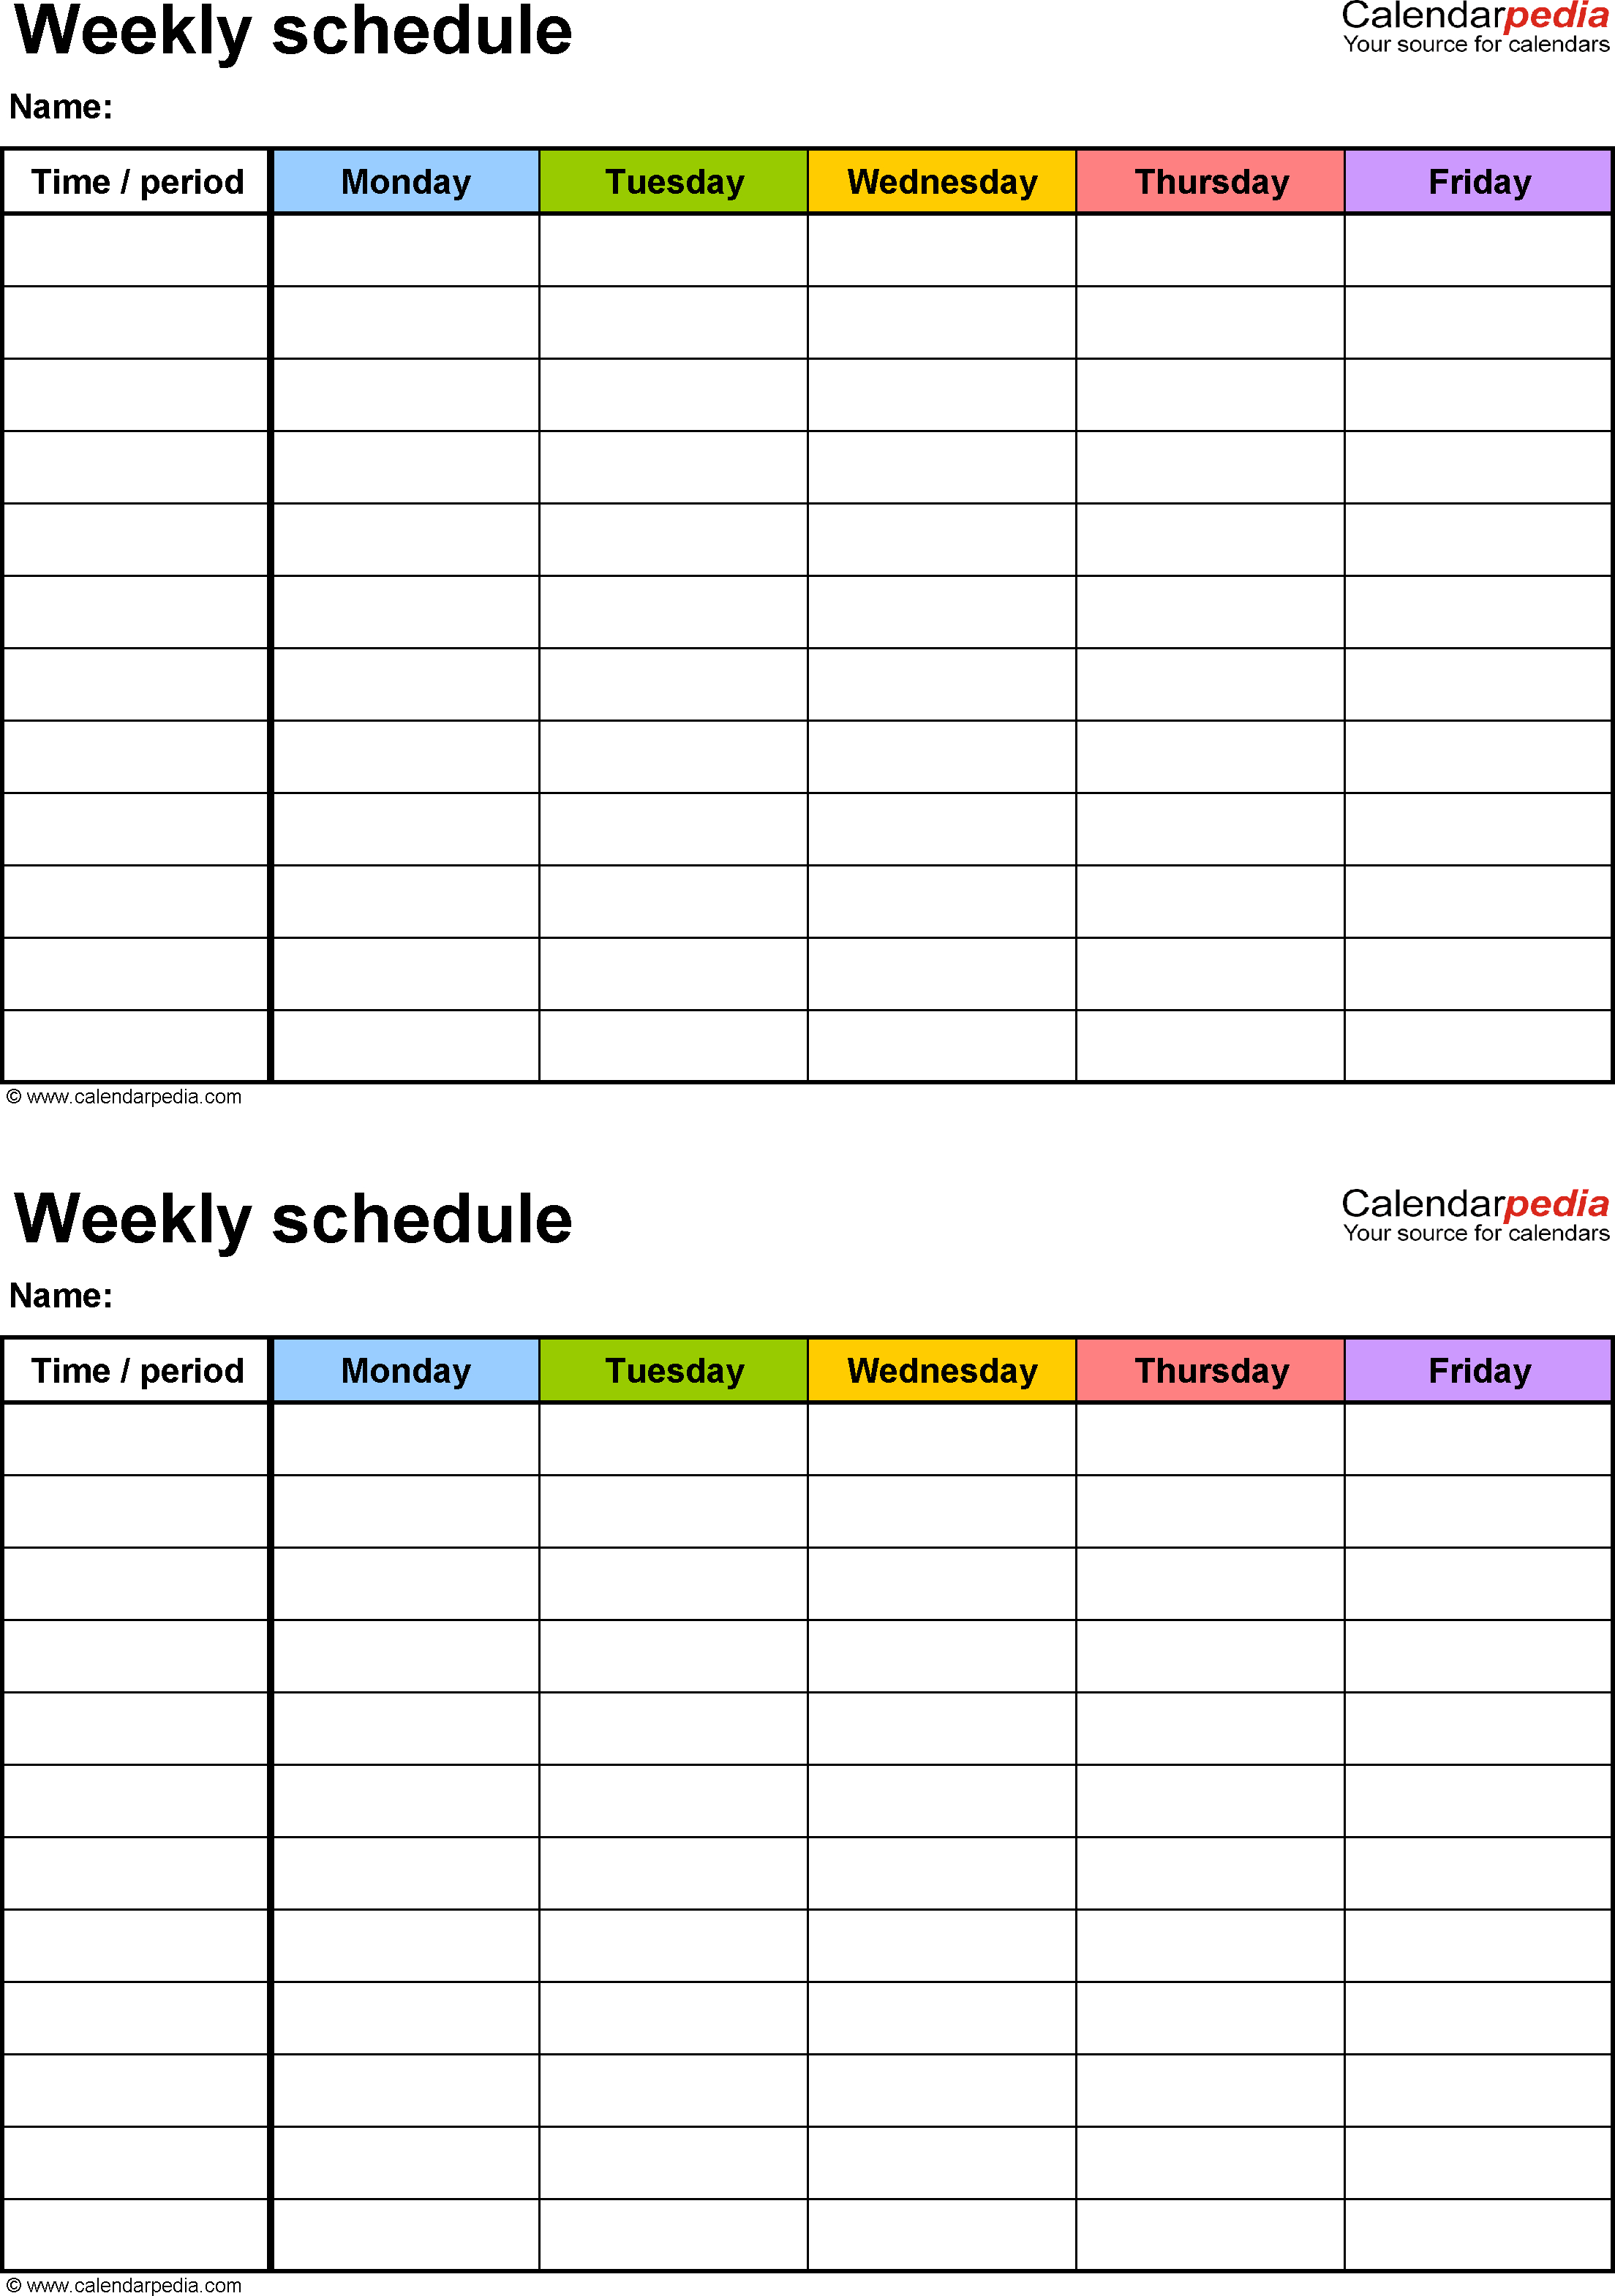 Free Weekly Schedule Templates For Word - 18 Templates with regard to Printable Schedule Template For Pages